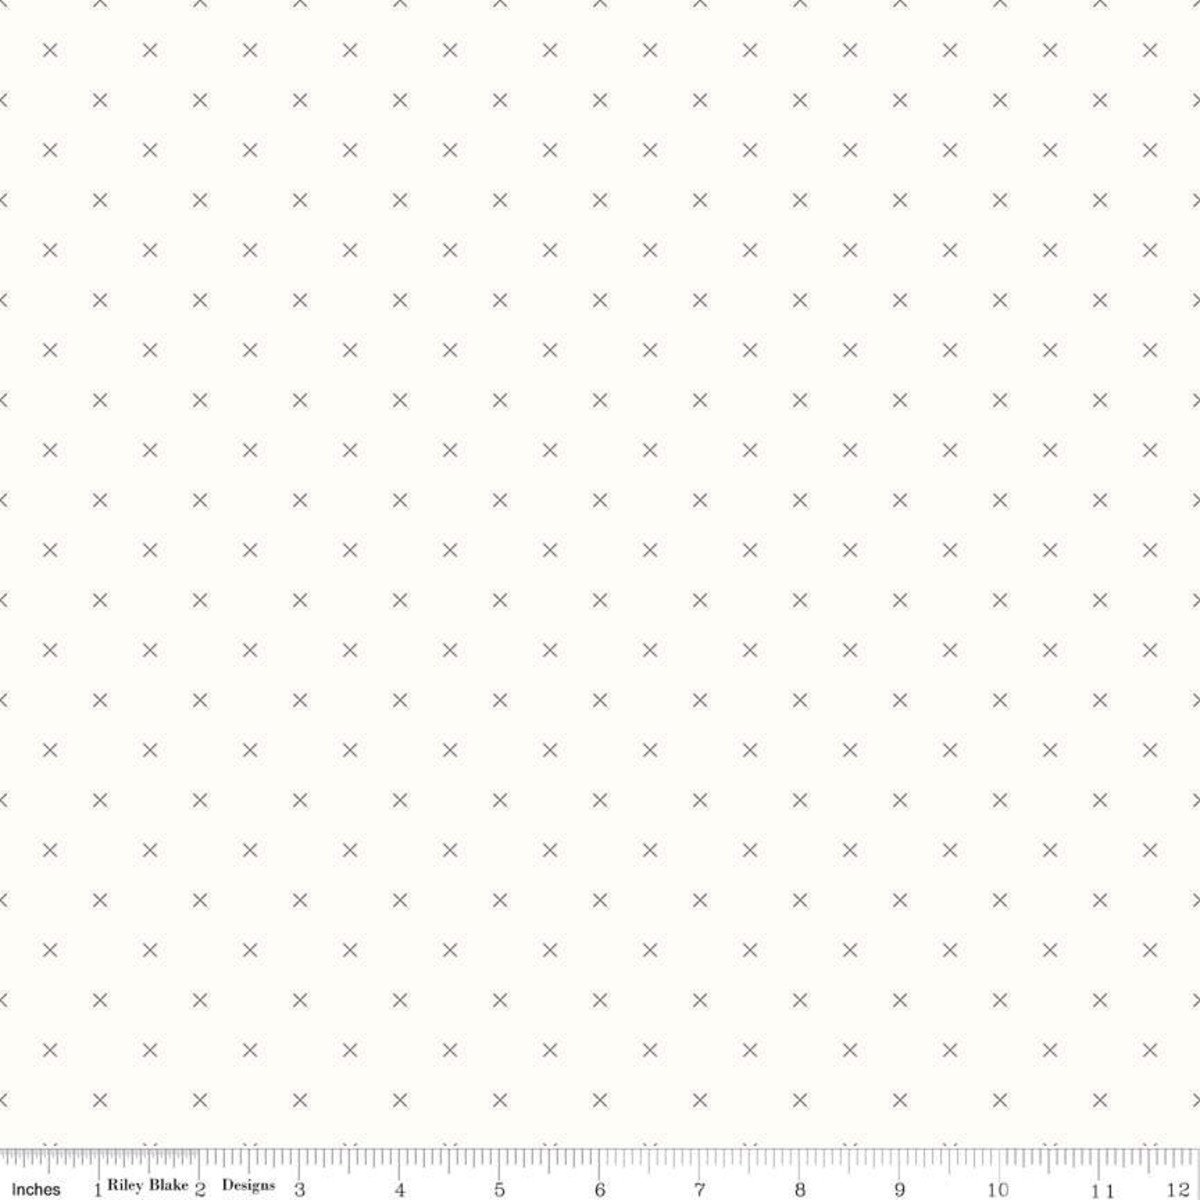 BEE BACKGROUNDS C6381 GRAY CROSS STITCH